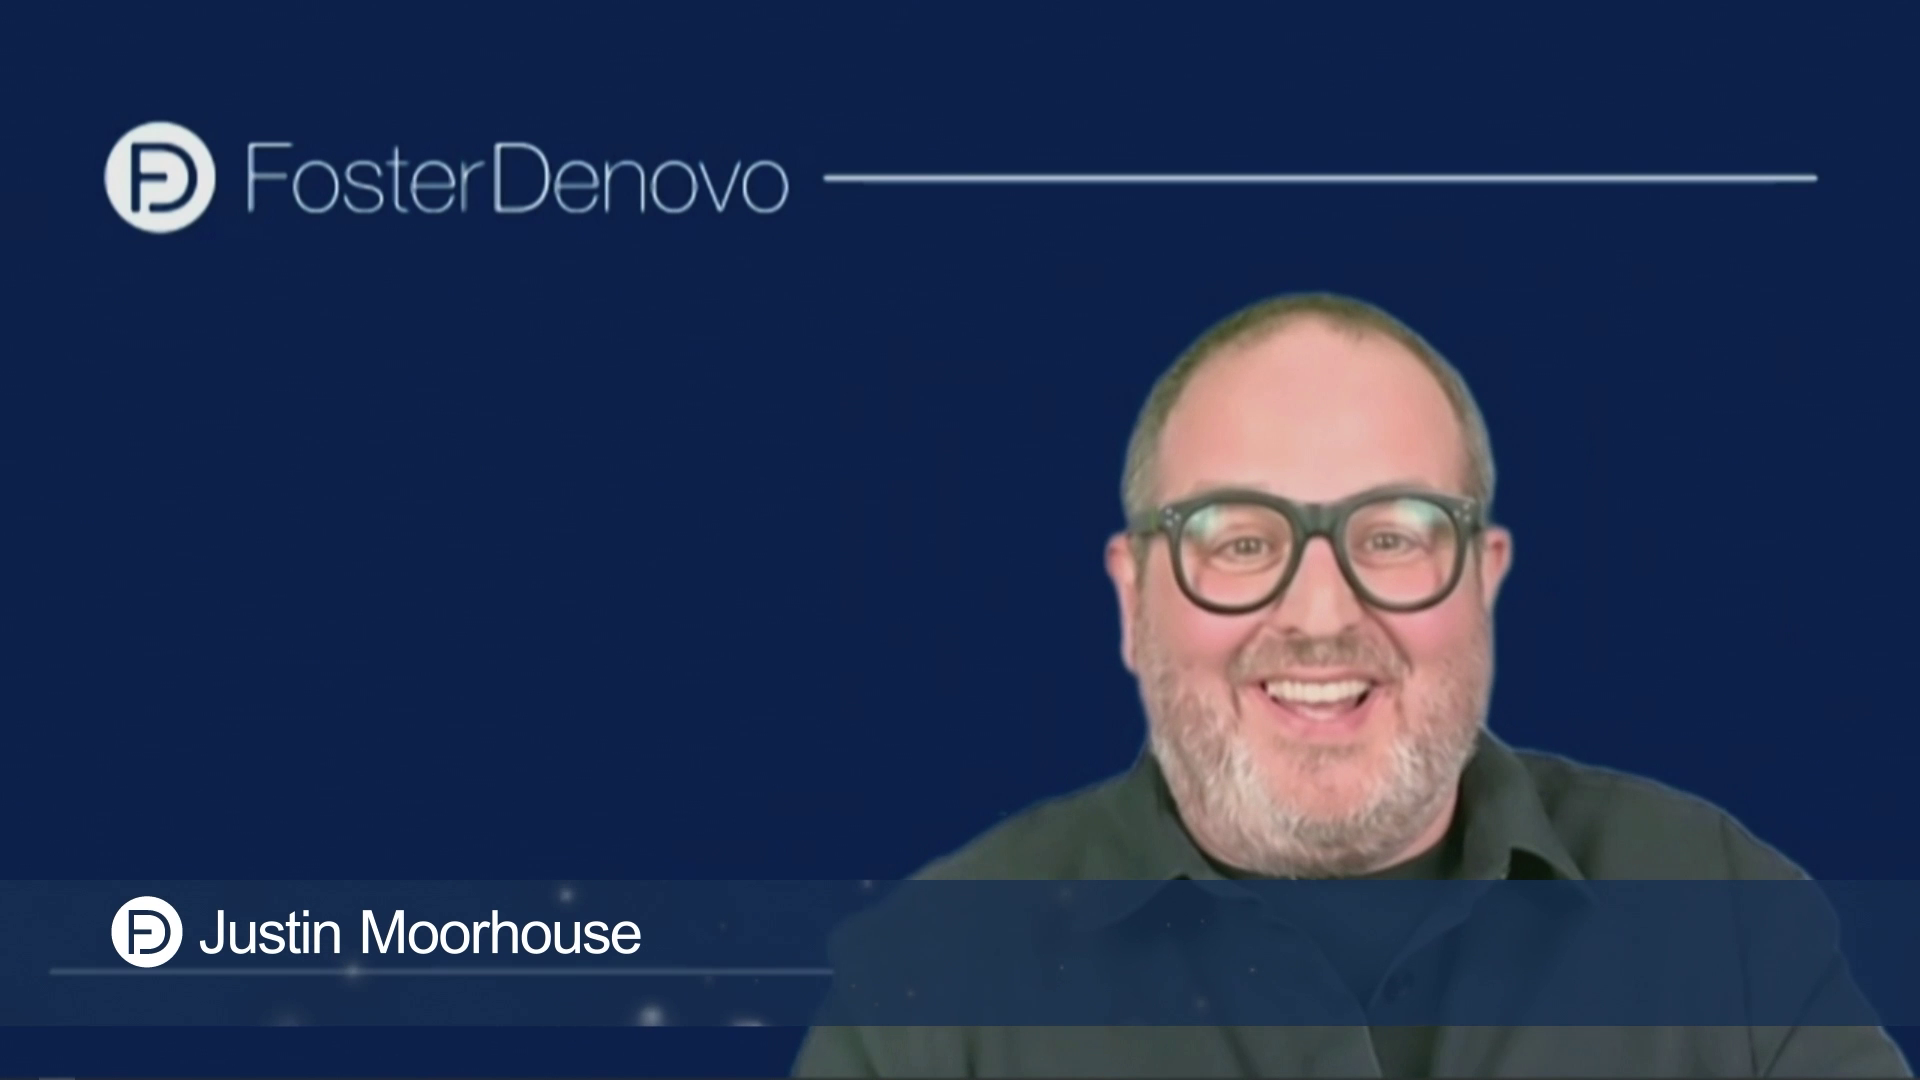 Foster Denovo Awards Comedy Introduction by Justin Moorhouse